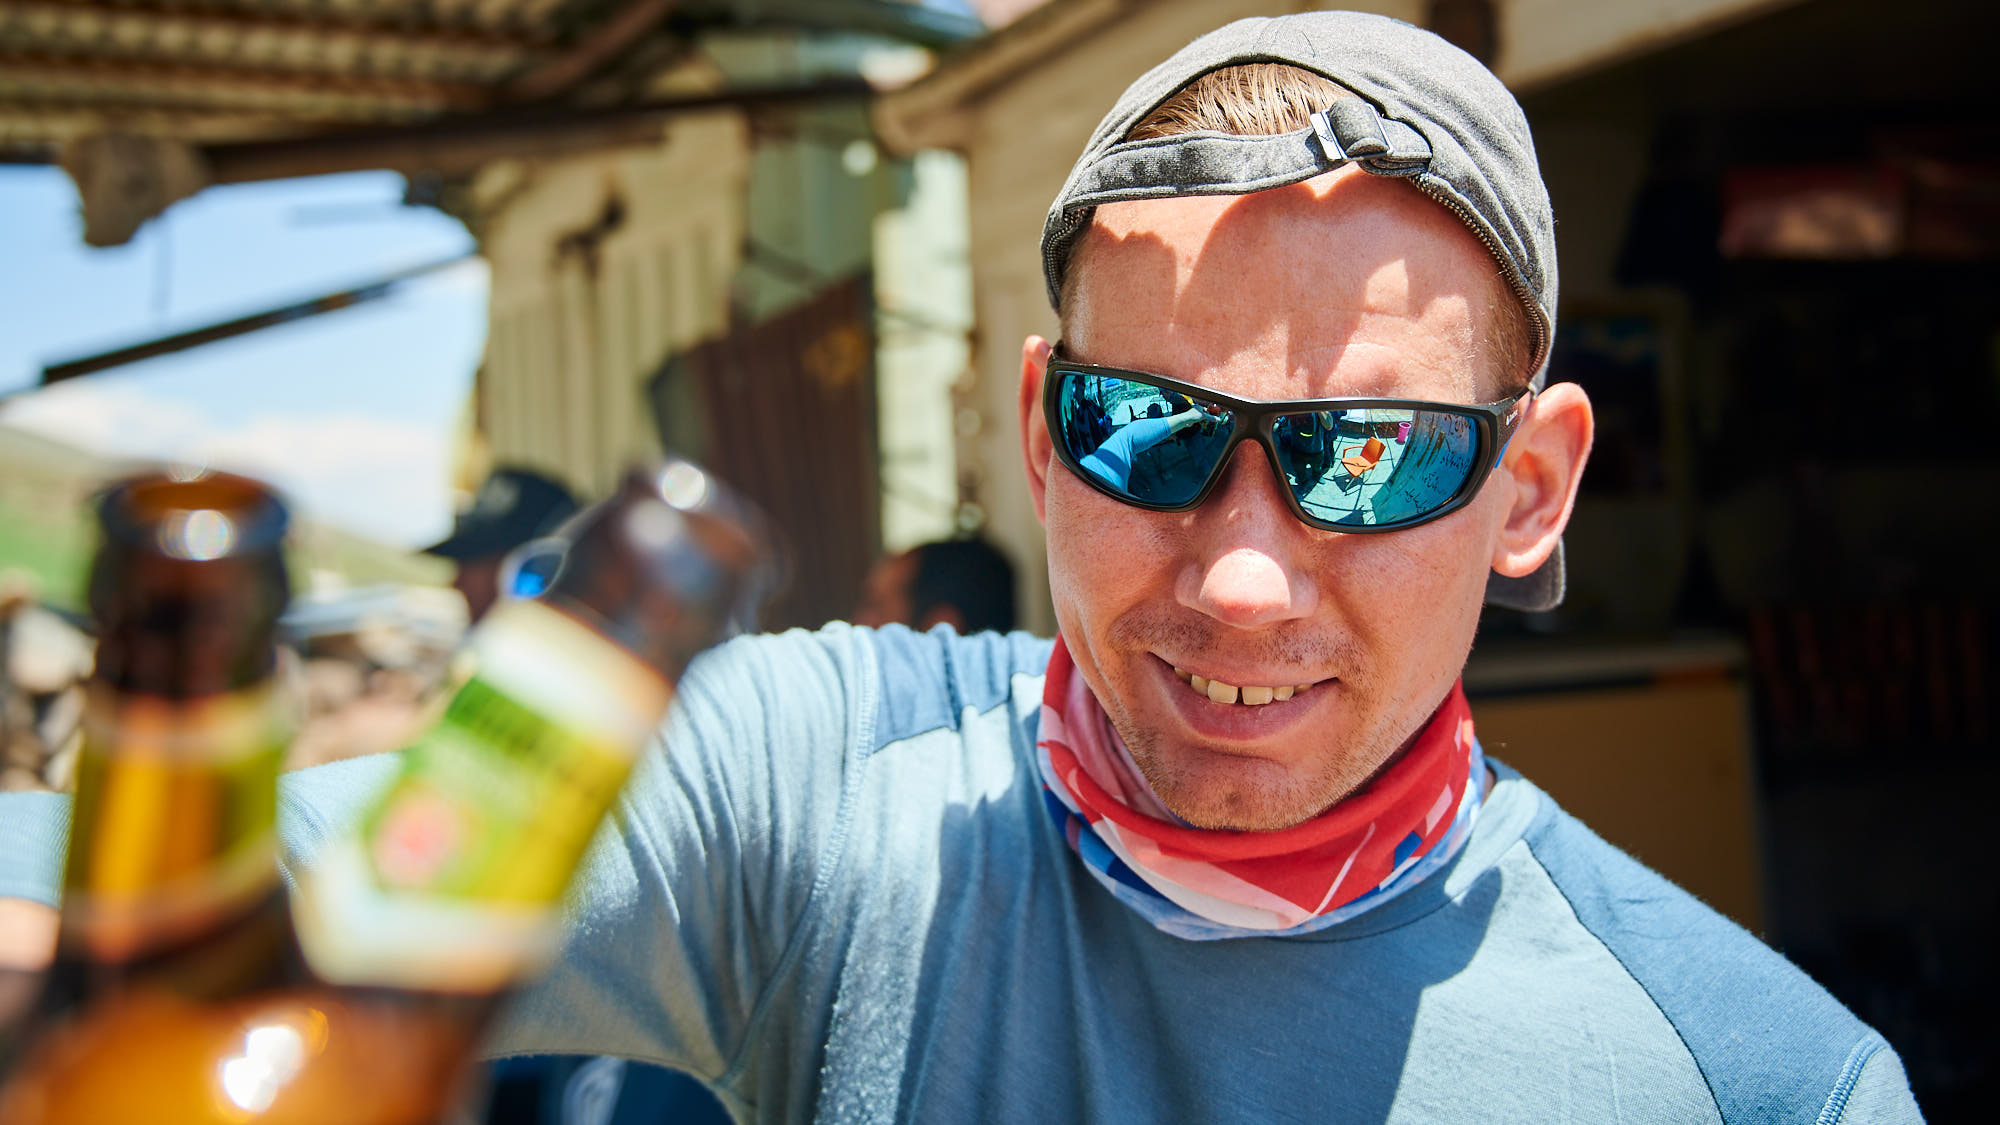 Climber celebrating a successful climb with a non-alcoholic beer in Iran